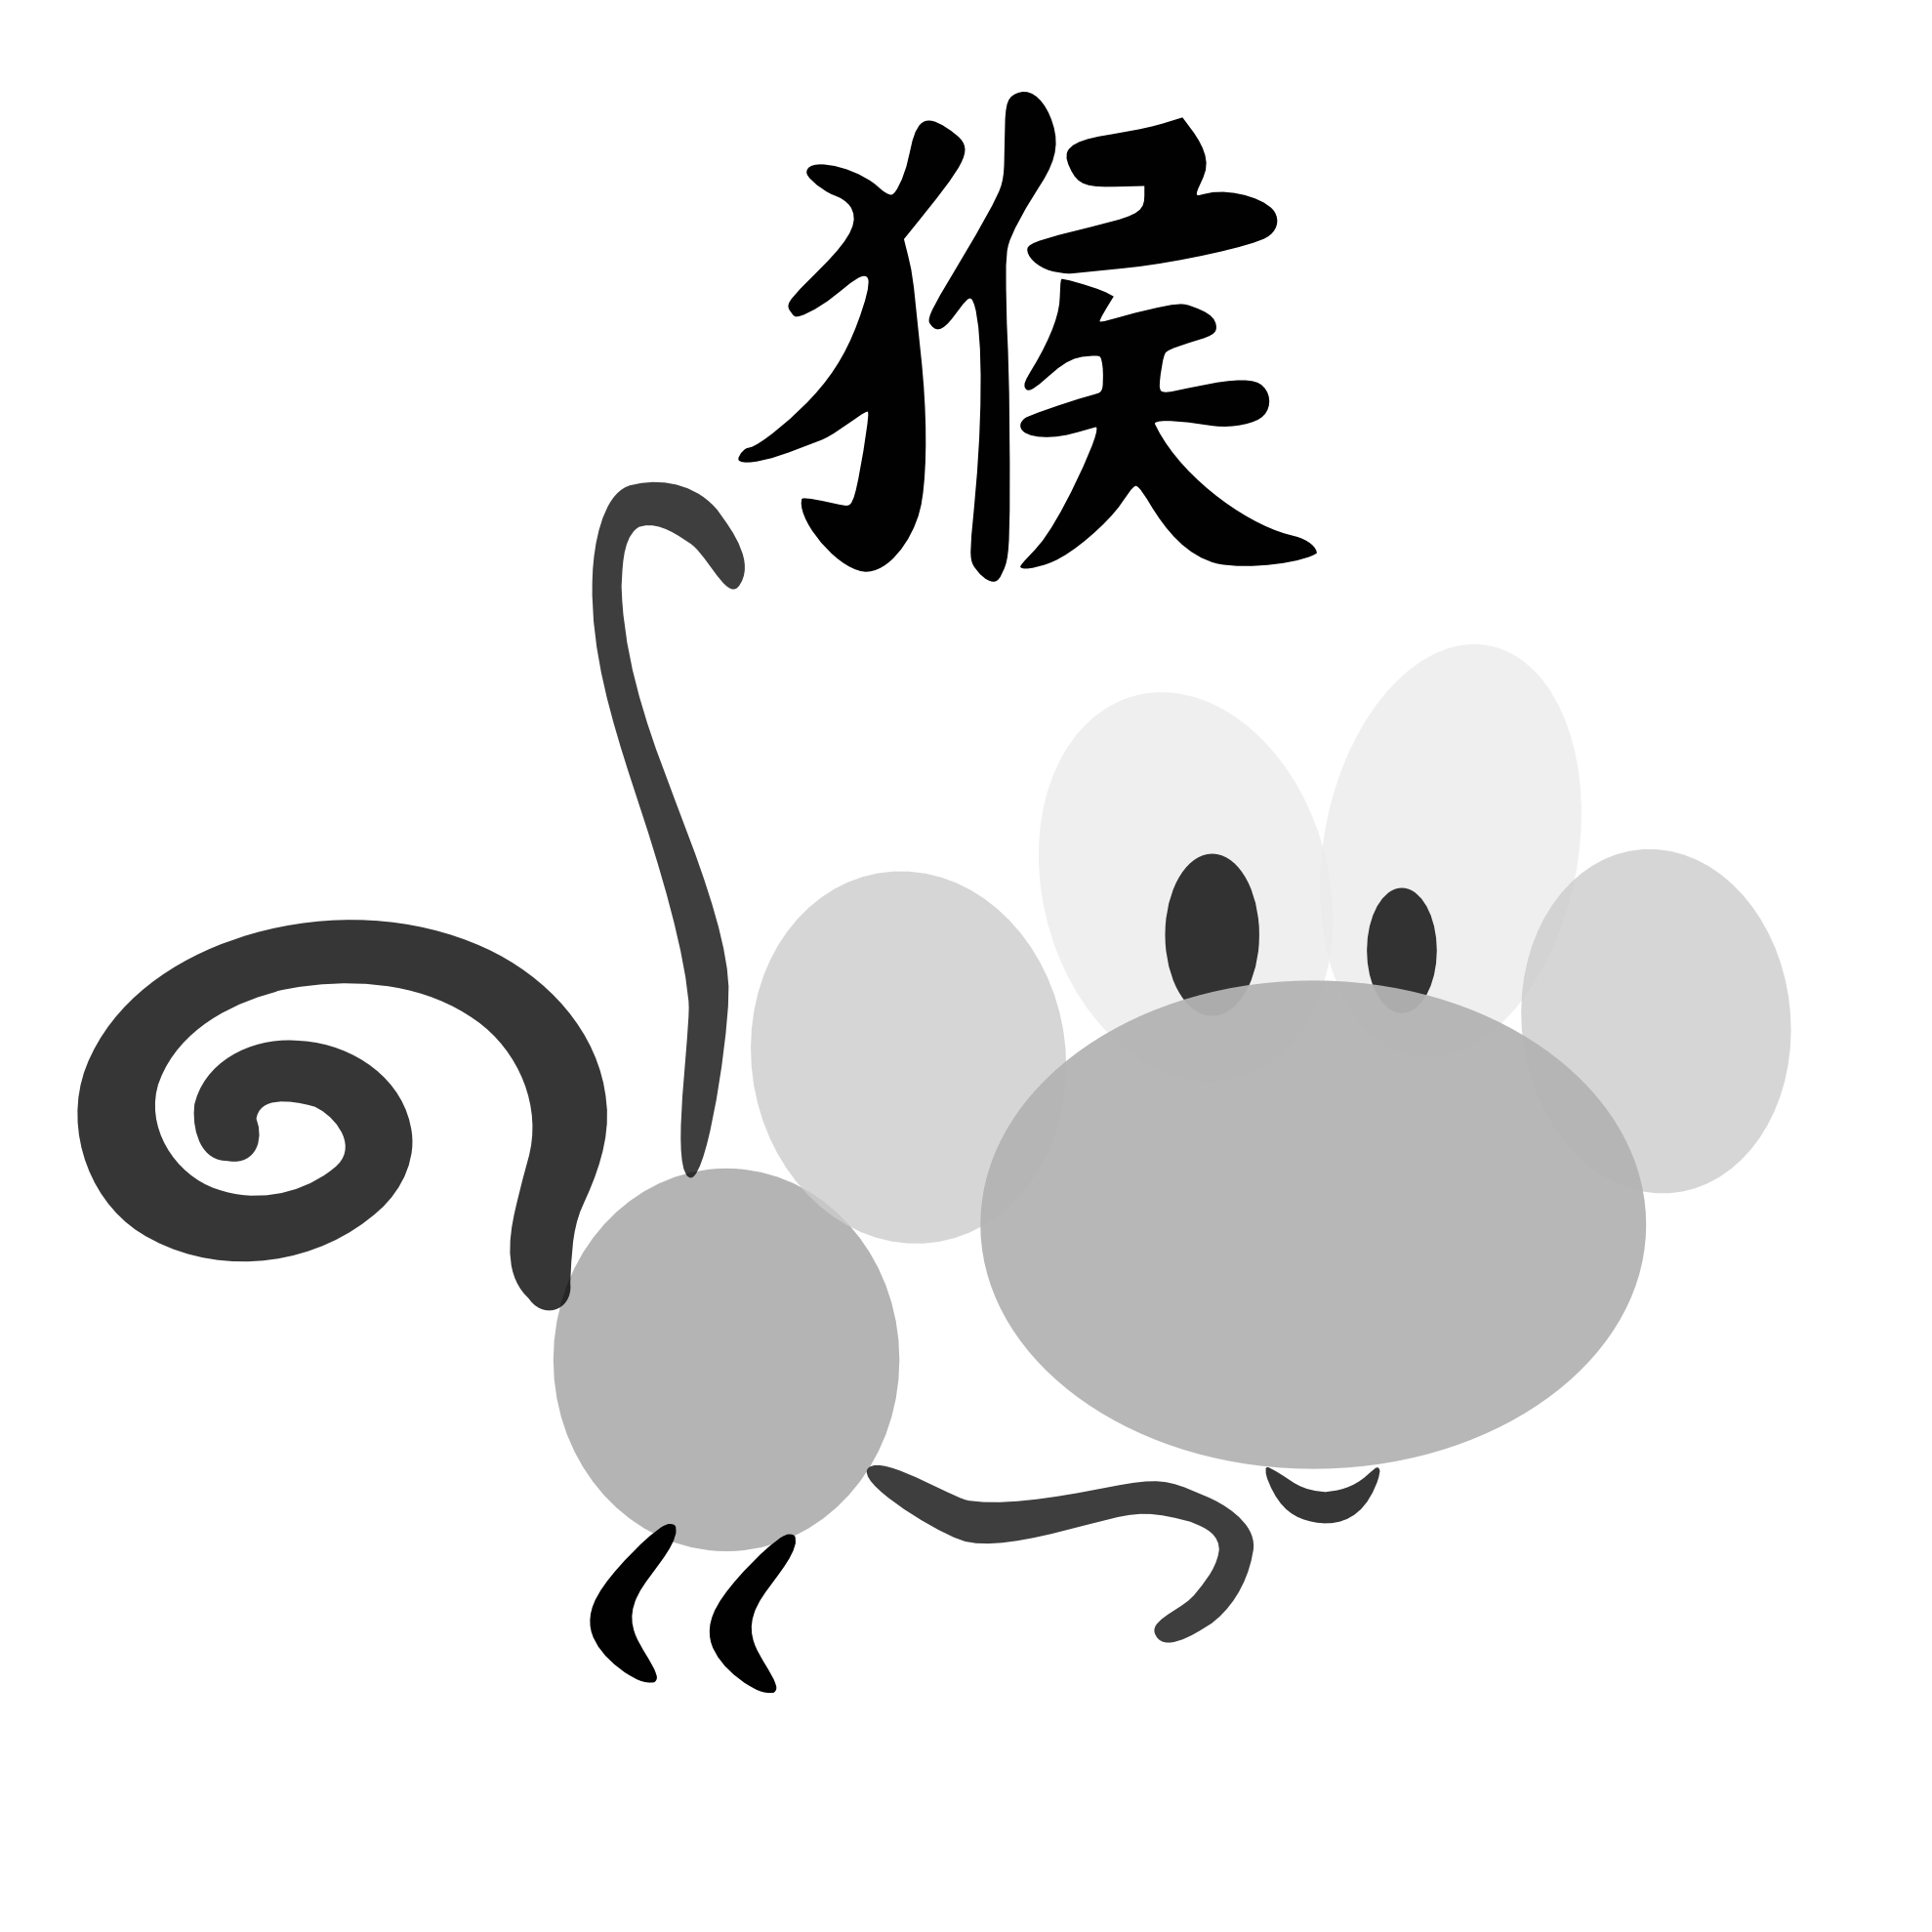 Chinese horoscope monkey sign. Character clipart transparent